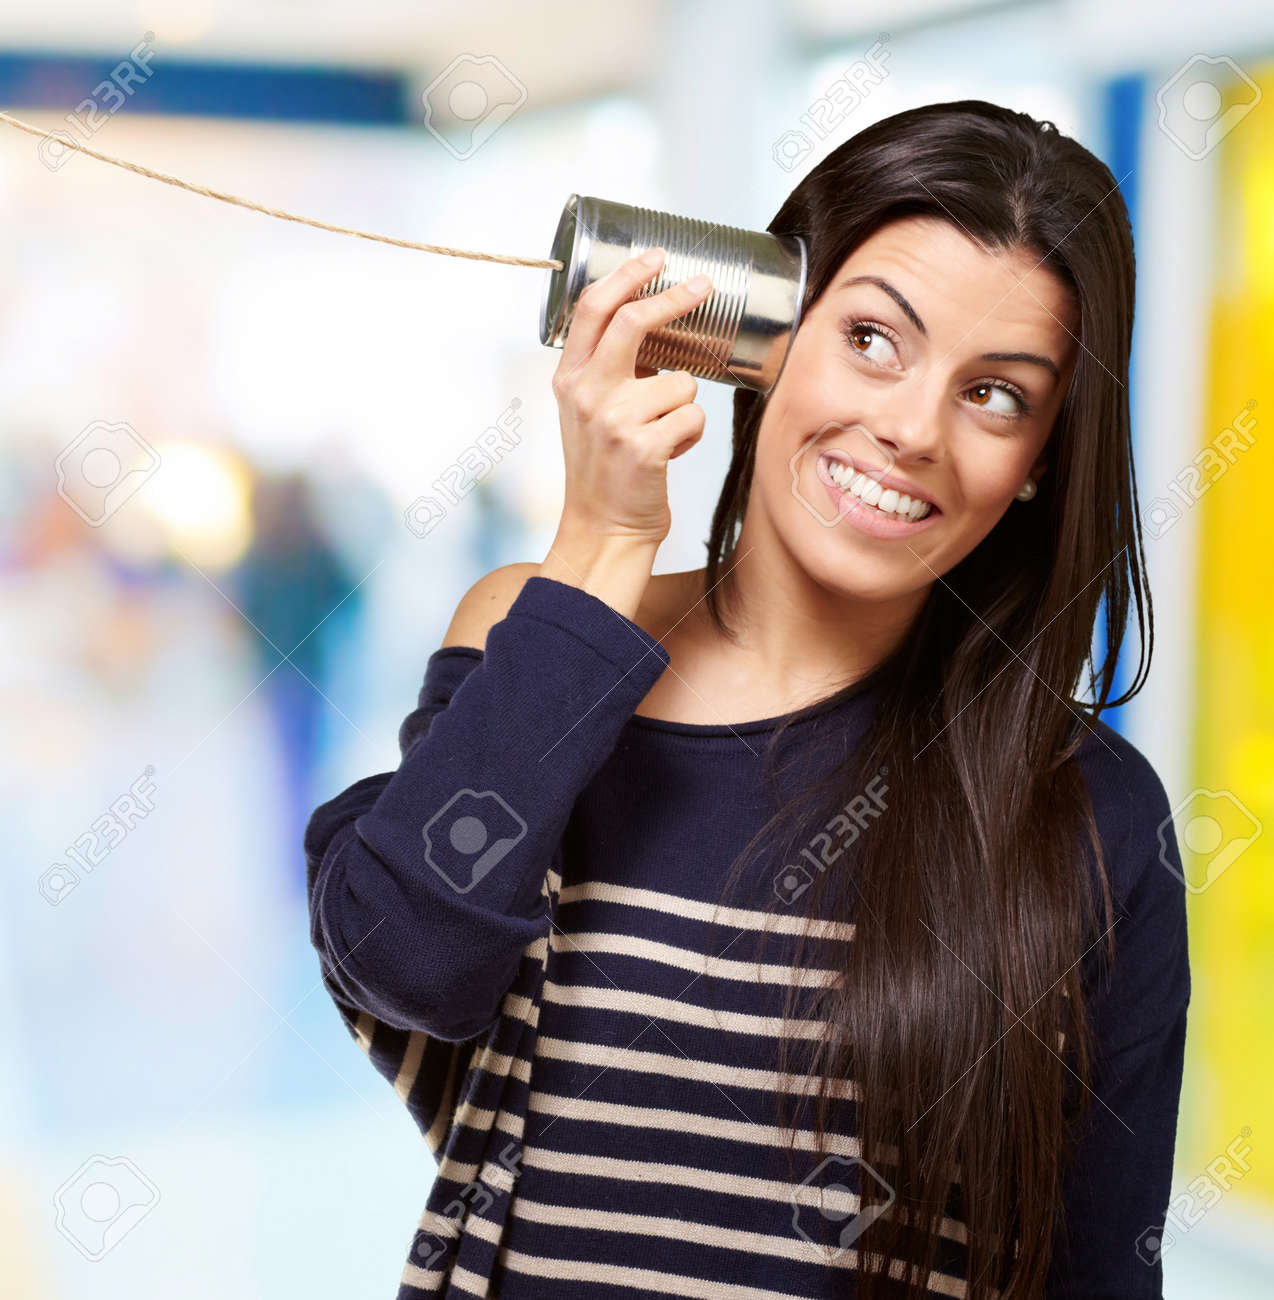 Young woman hearing using a metal tin can at crowded place Stock Photo - 14704163